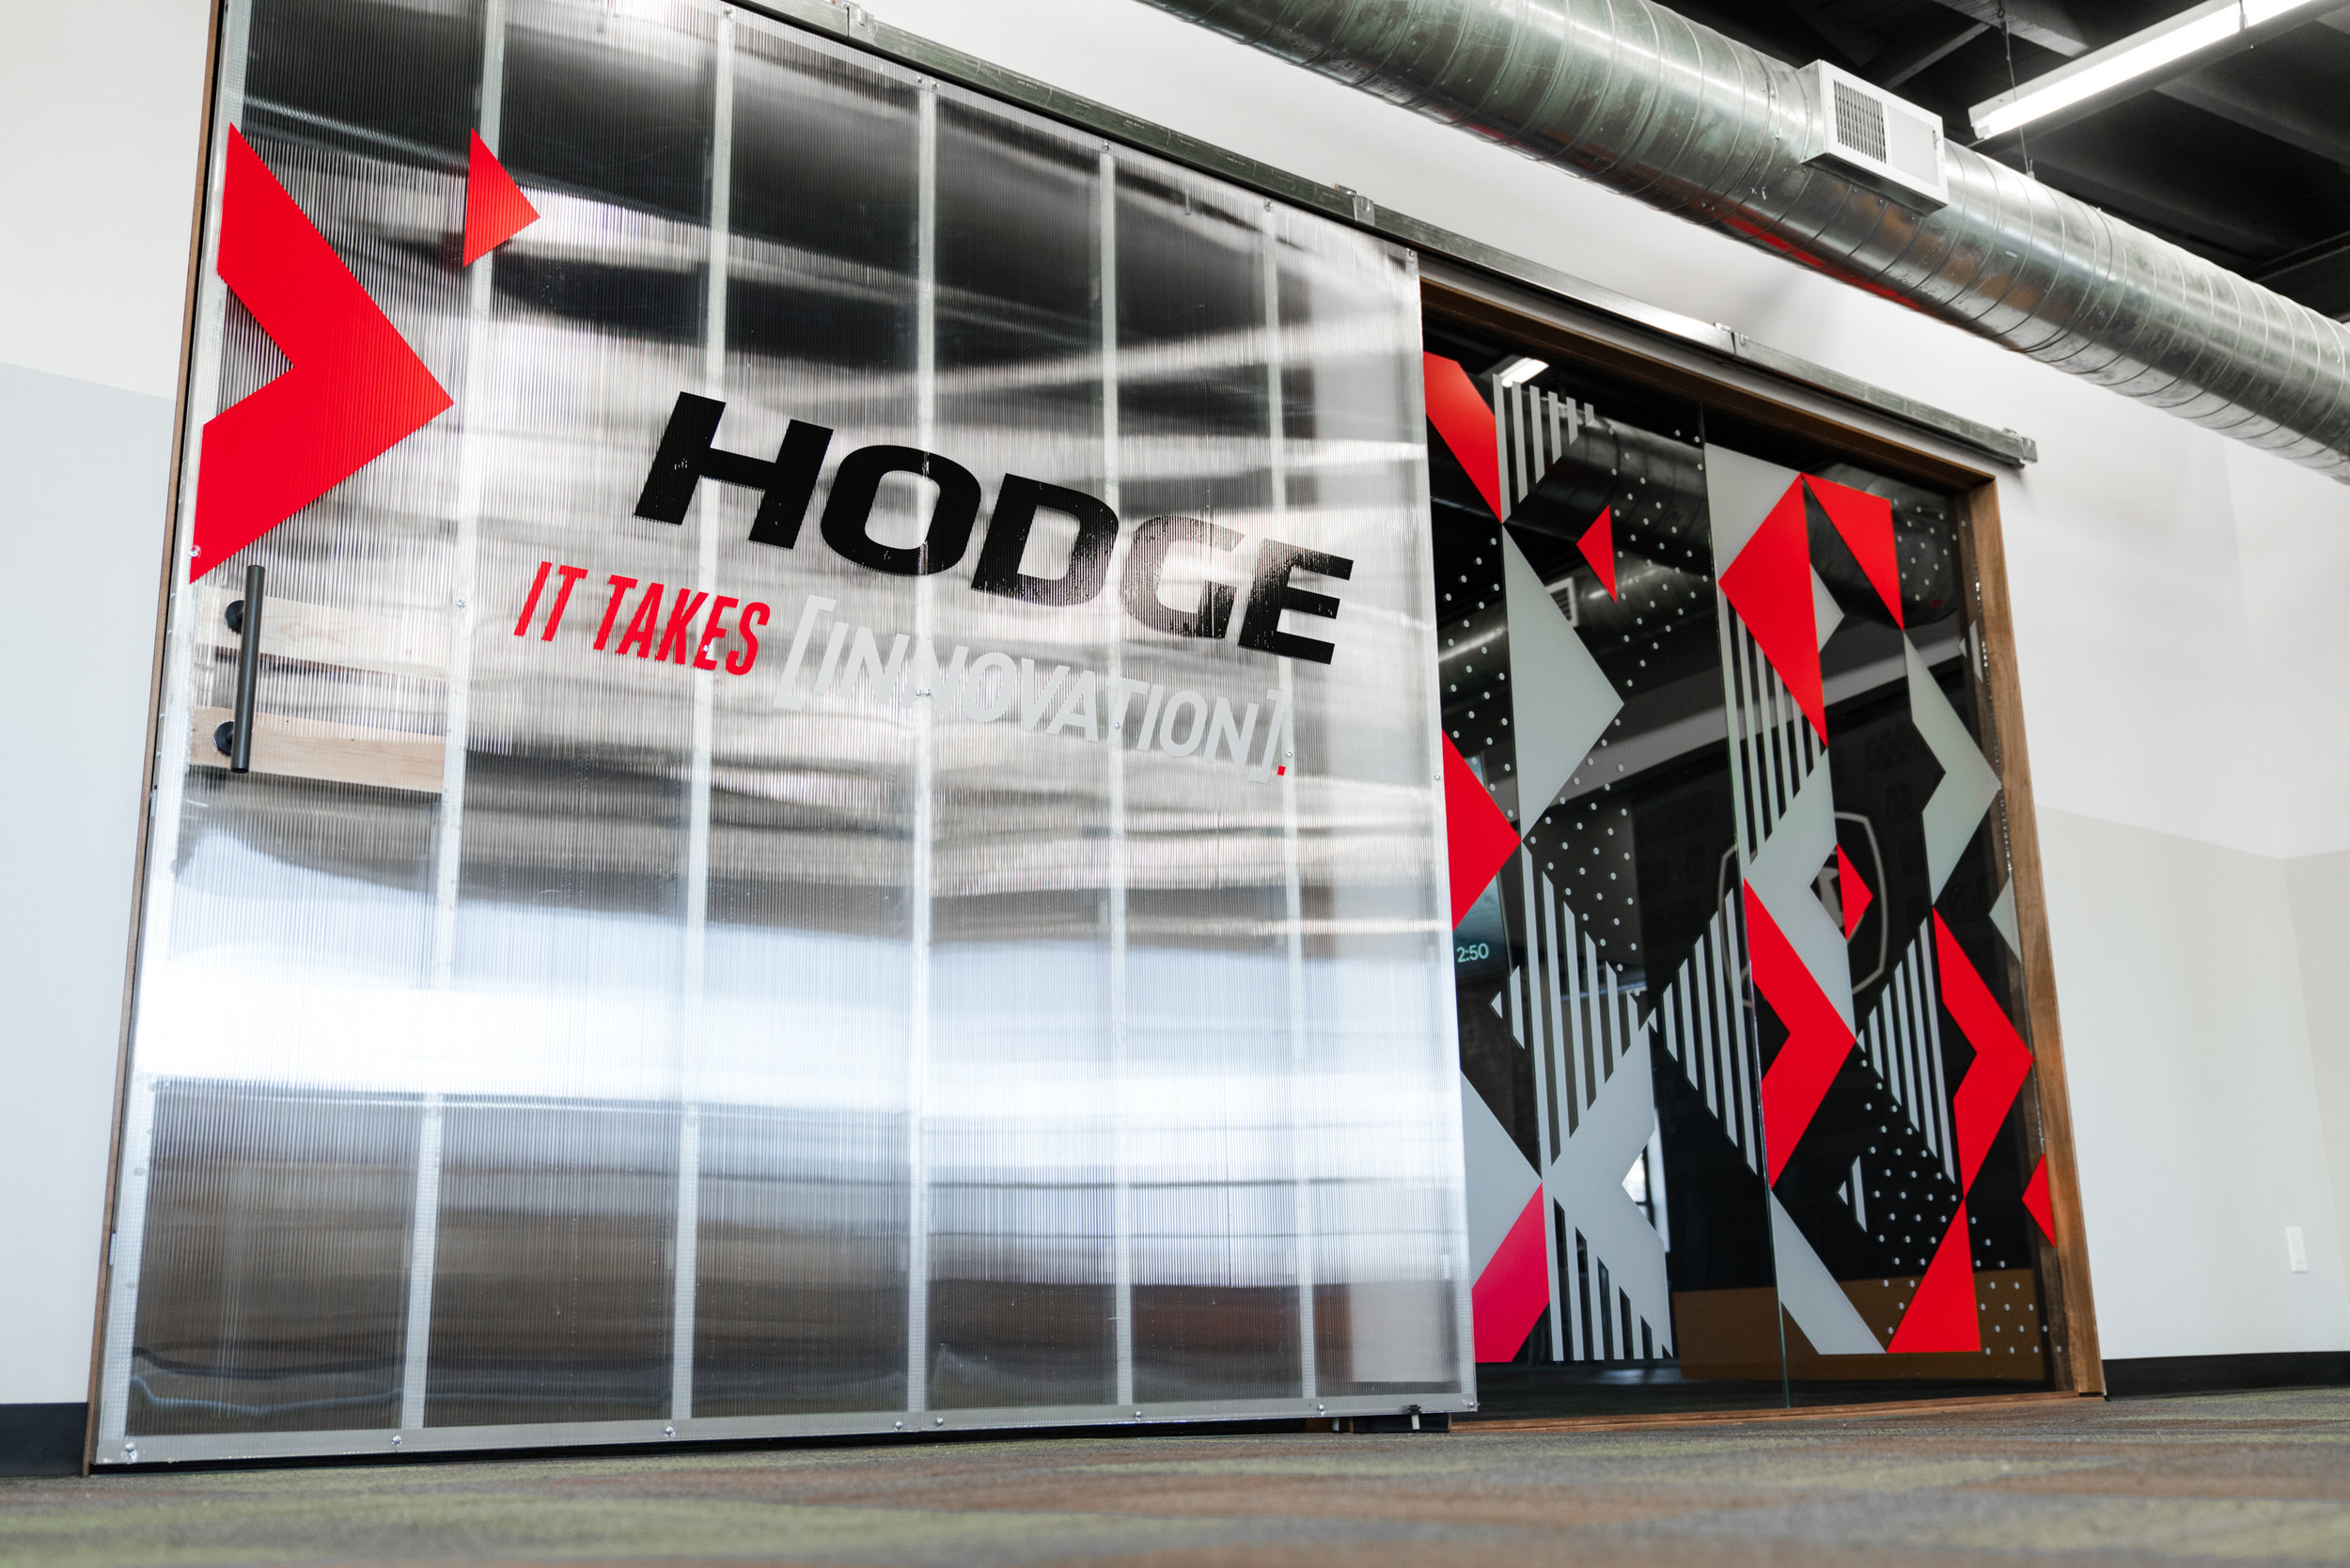 Hodge Innovation Space